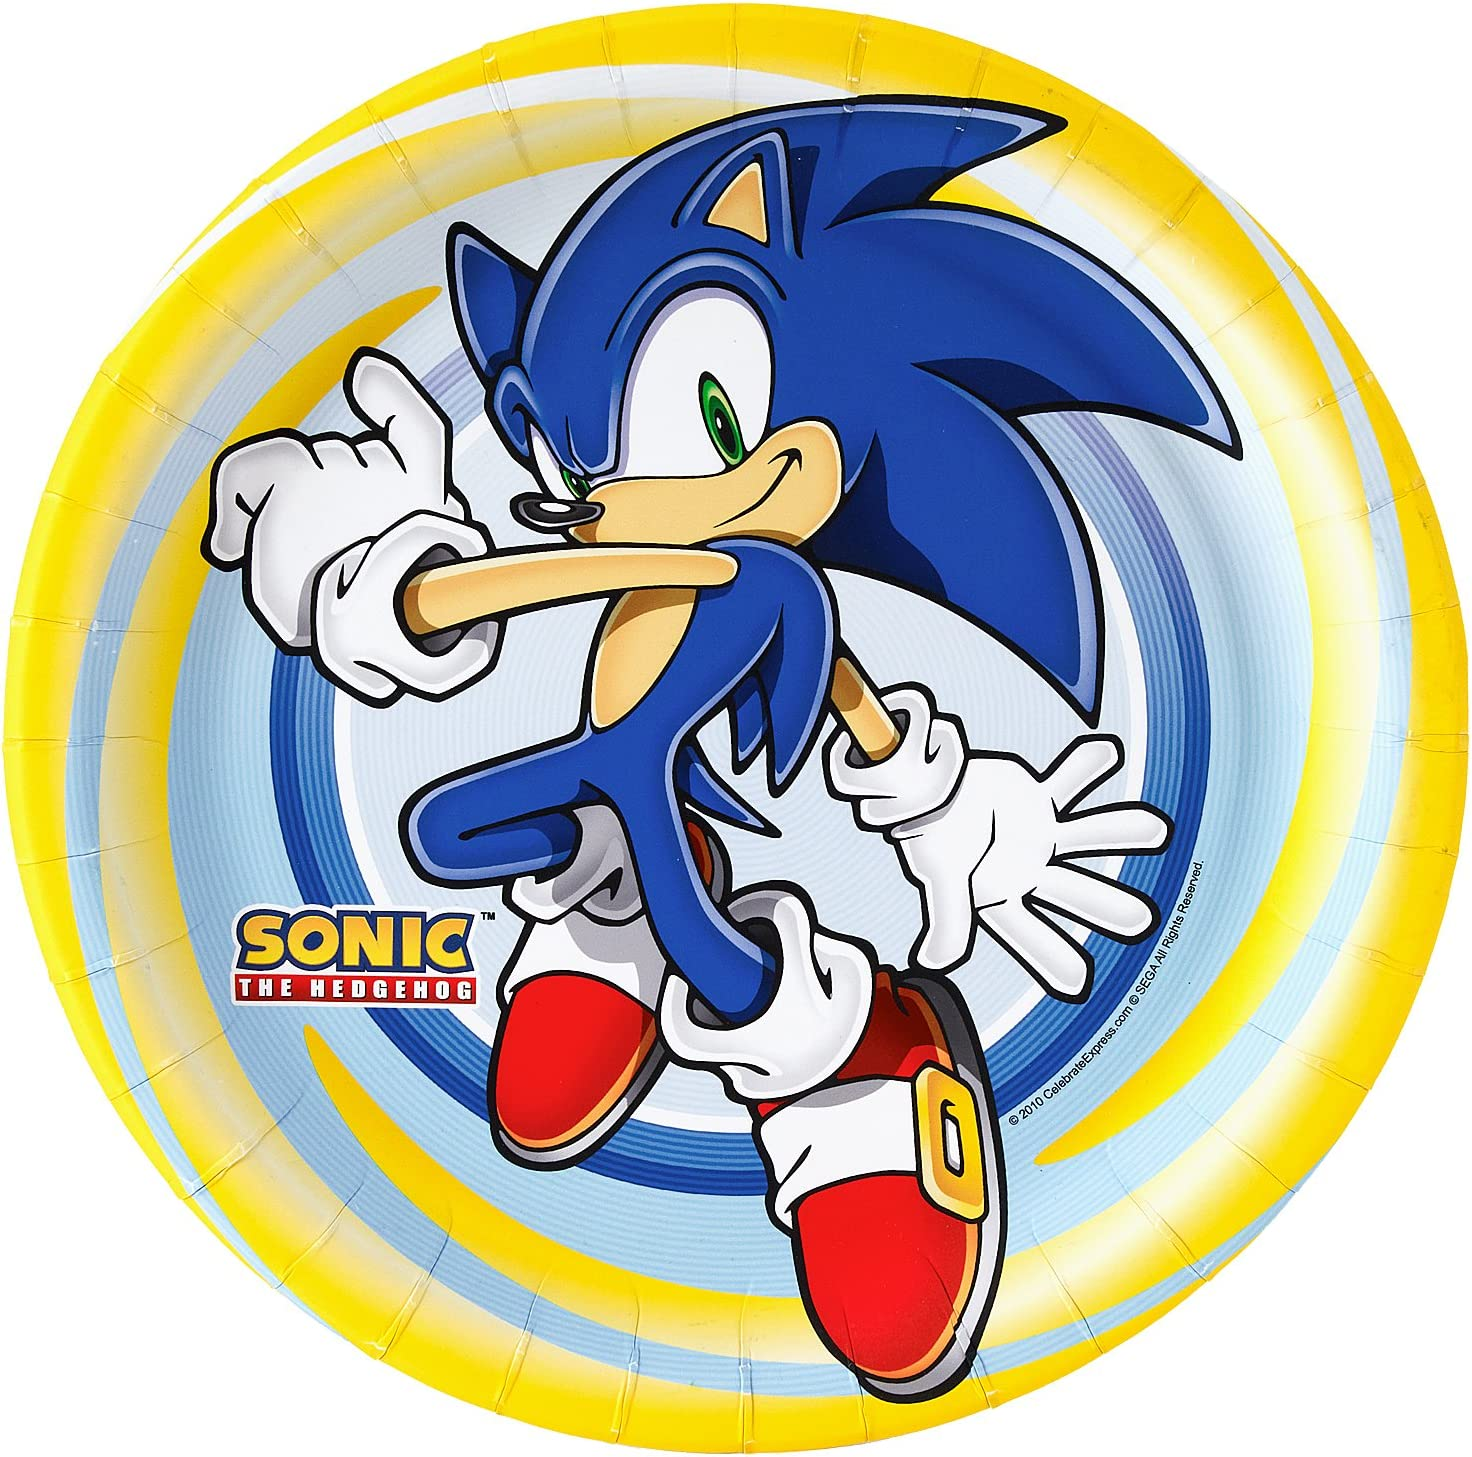 Sonic the Hedgehog Birthday Party Banner and Tablecloth Cloth for Sonic Theme Party Decoration Kids Bithday Party Sonic The Hedgehog Party Supplies